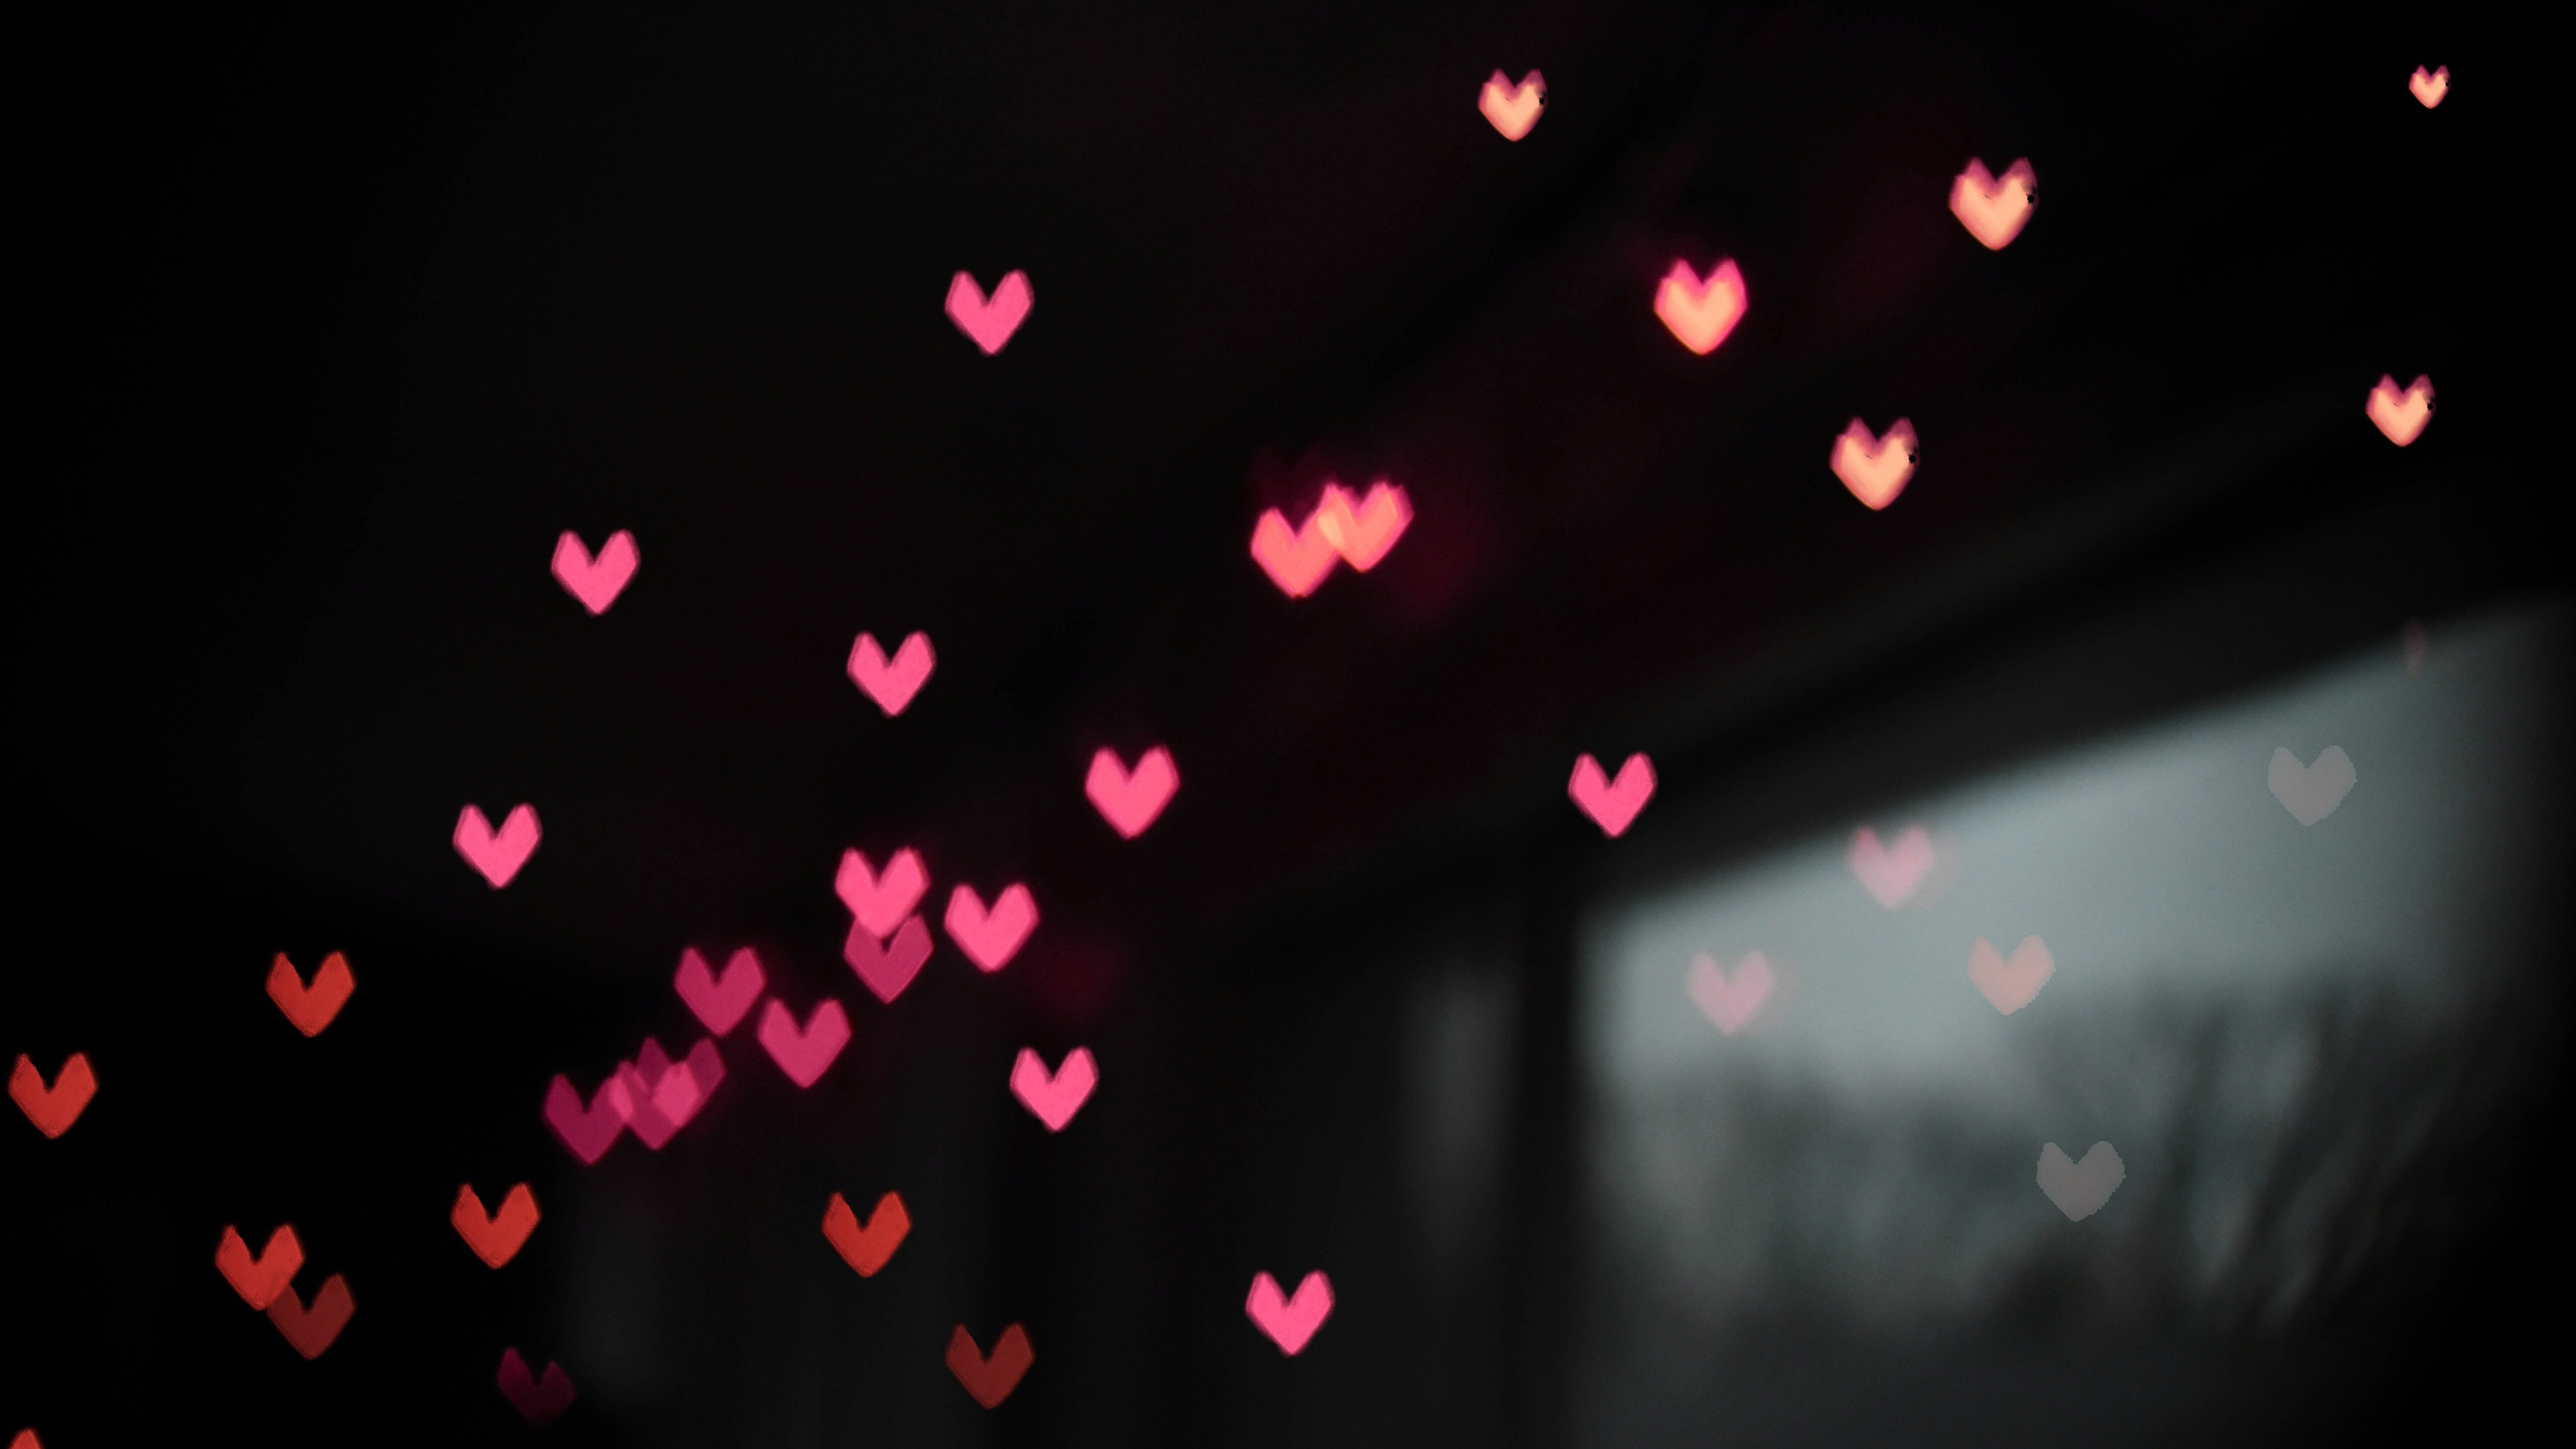 Small Pink Heart In Black Background 5K Abstract Wallpaper